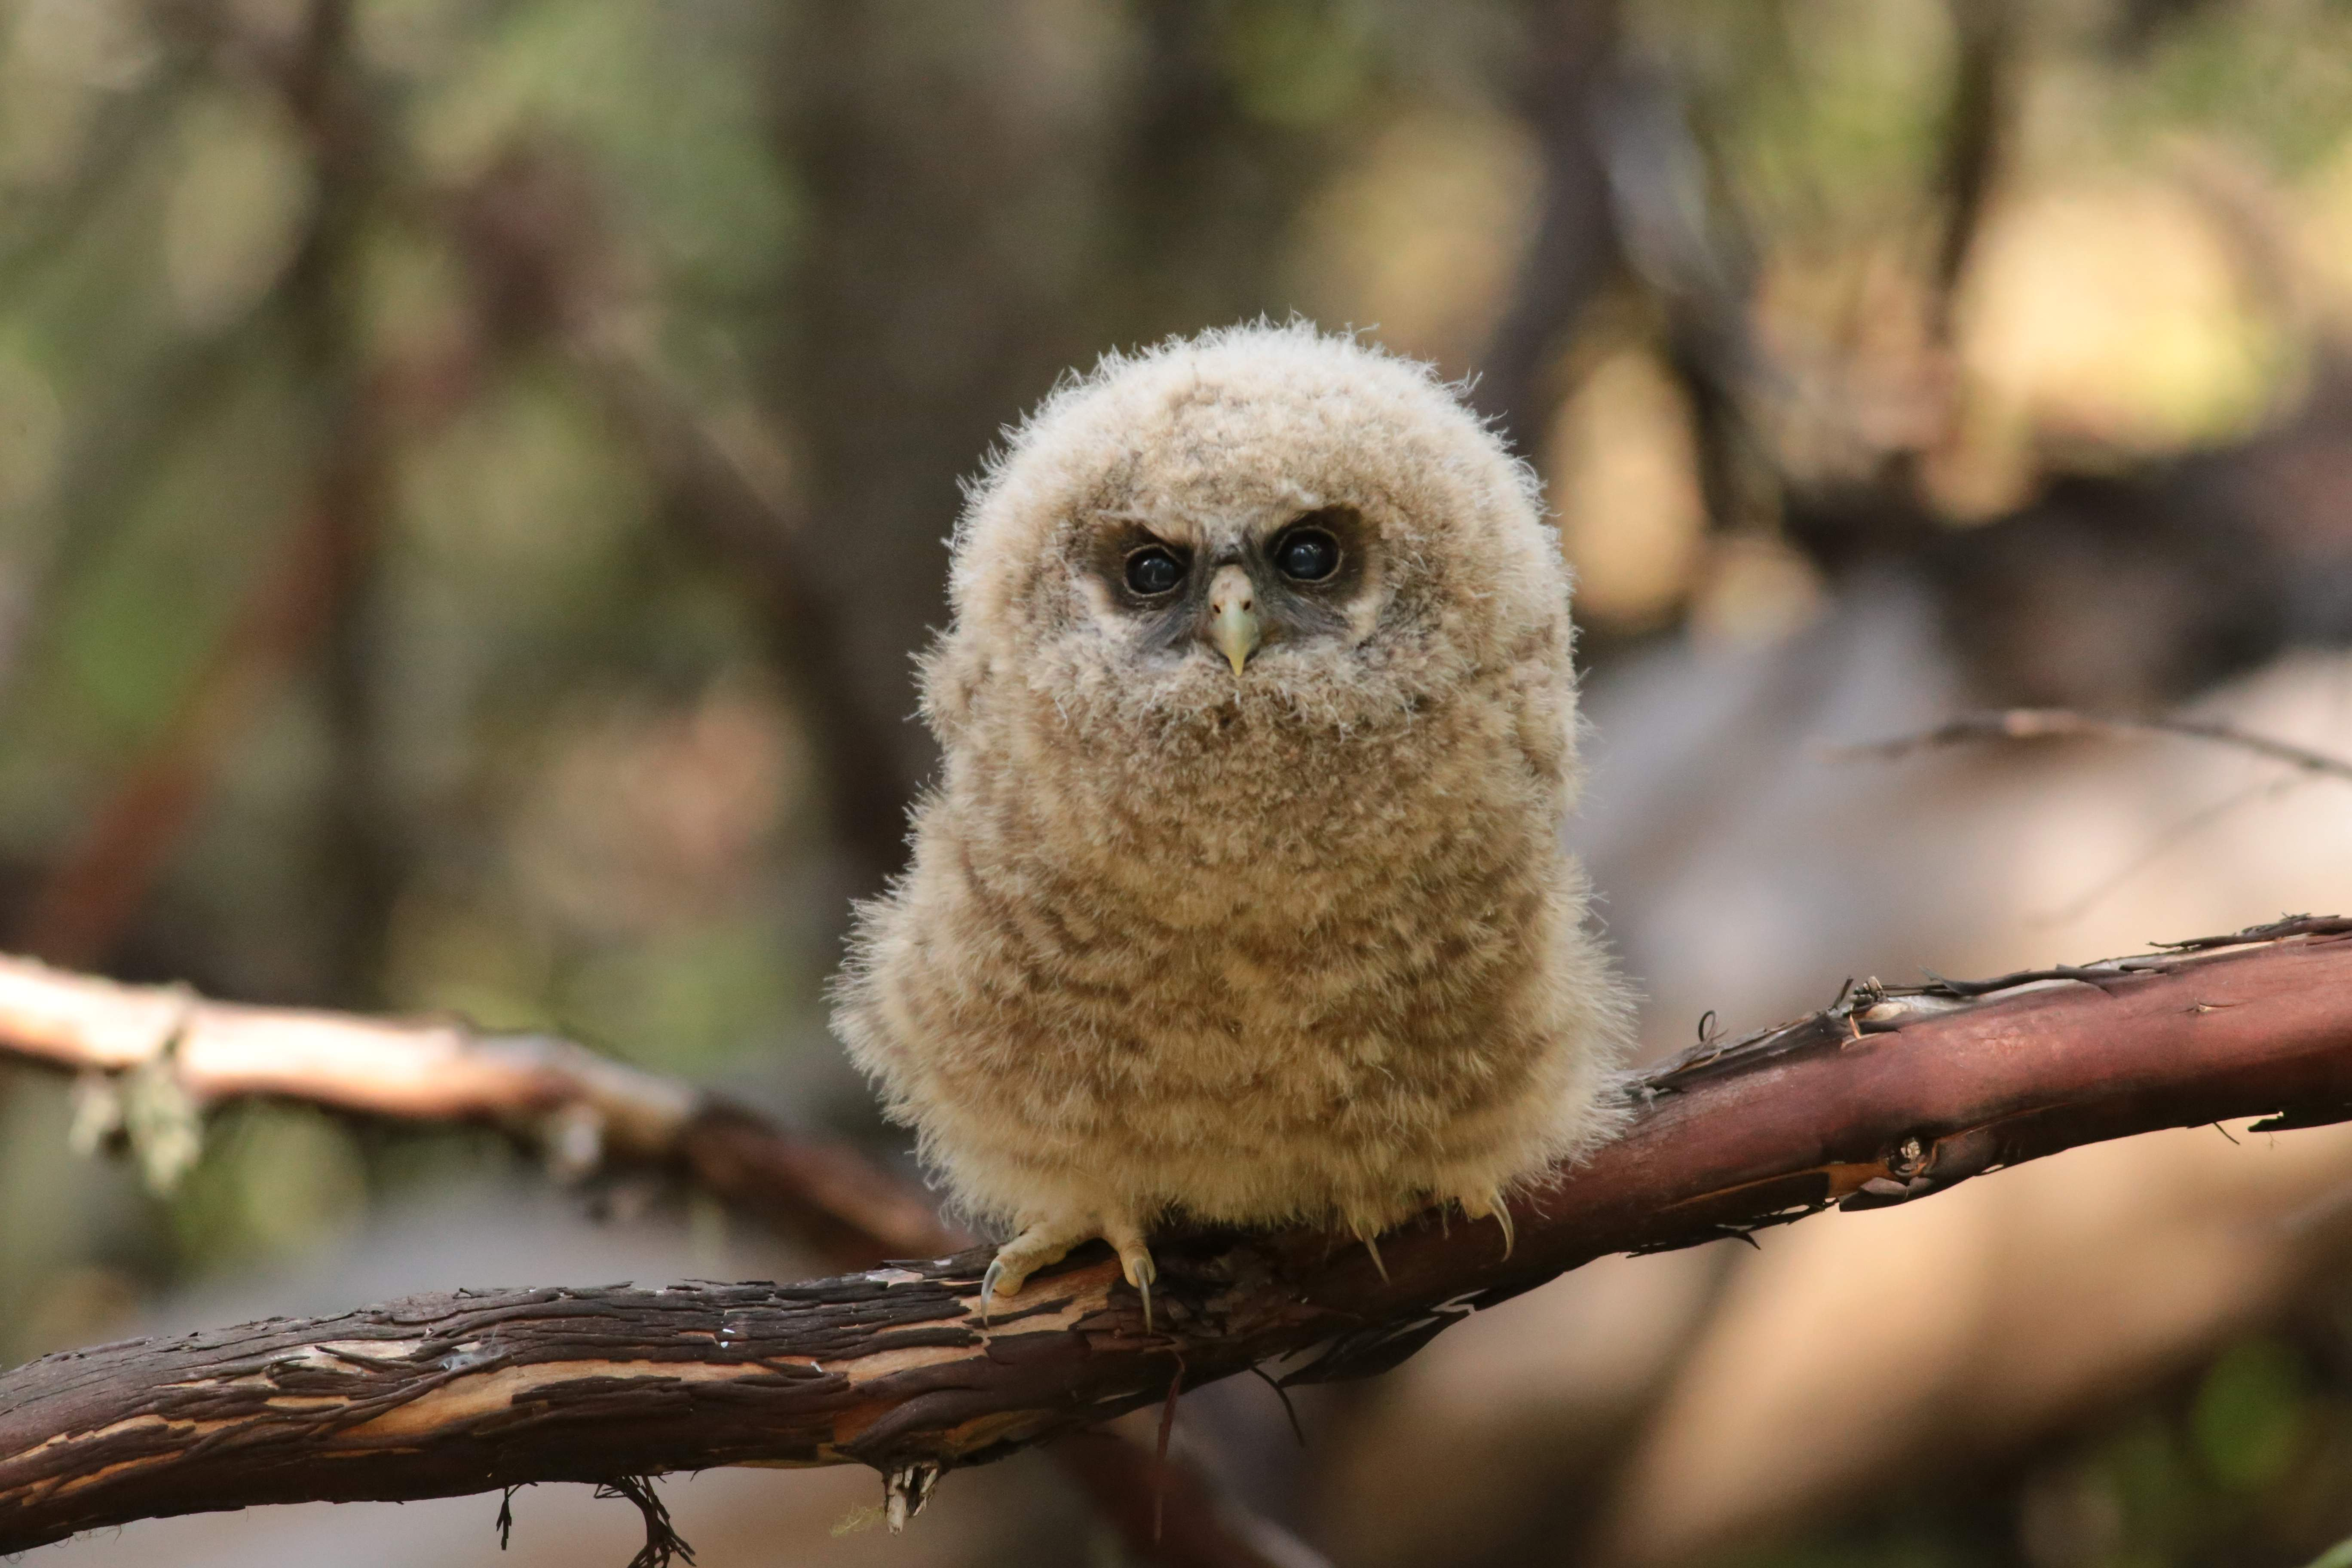 Fourth Place: Zia Fukuda of the Applegate wrote this description of her photo of a spotted owl fledgling: 'This is one of two young successfully fledged by a pair at a known site in Southern Oregon. In the study area, this site is one of only three out of 45 or more sites monitored that successfully reproduced and fledged young. - Photo by Zia Fukuda